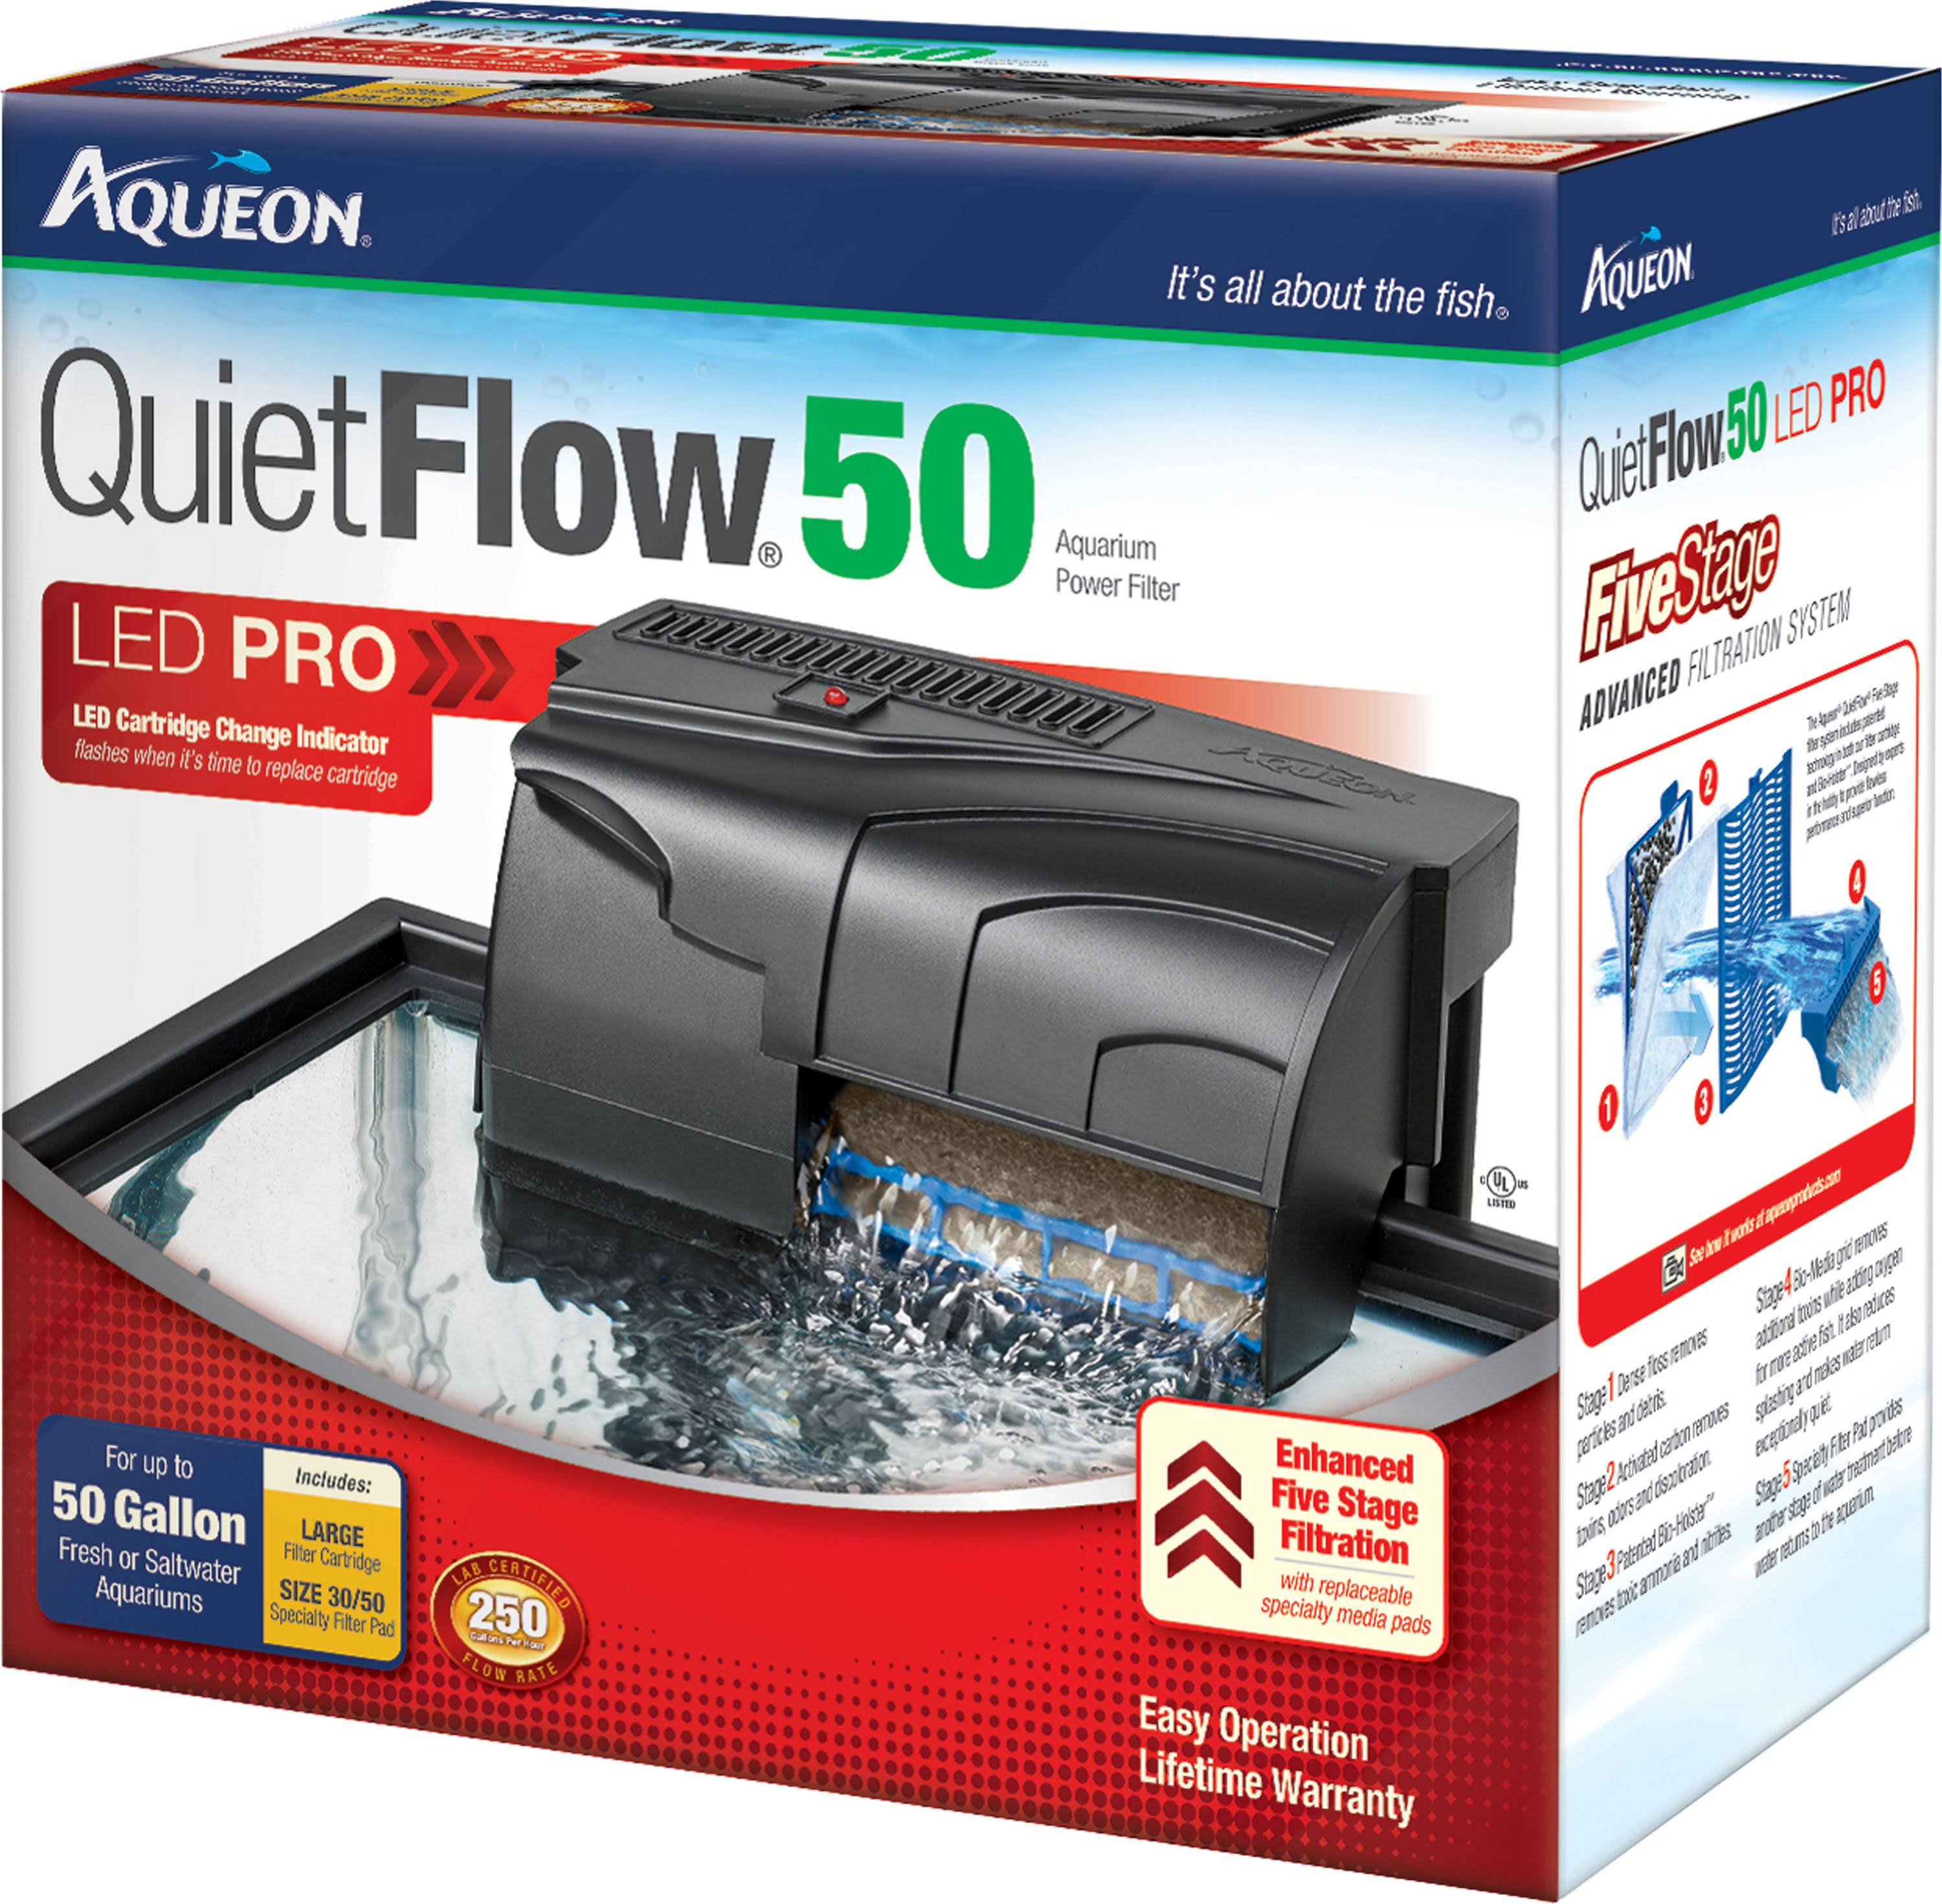 Aqueon QuietFlow LED Pro Aquarium Power Filter - 50gal, 250gph